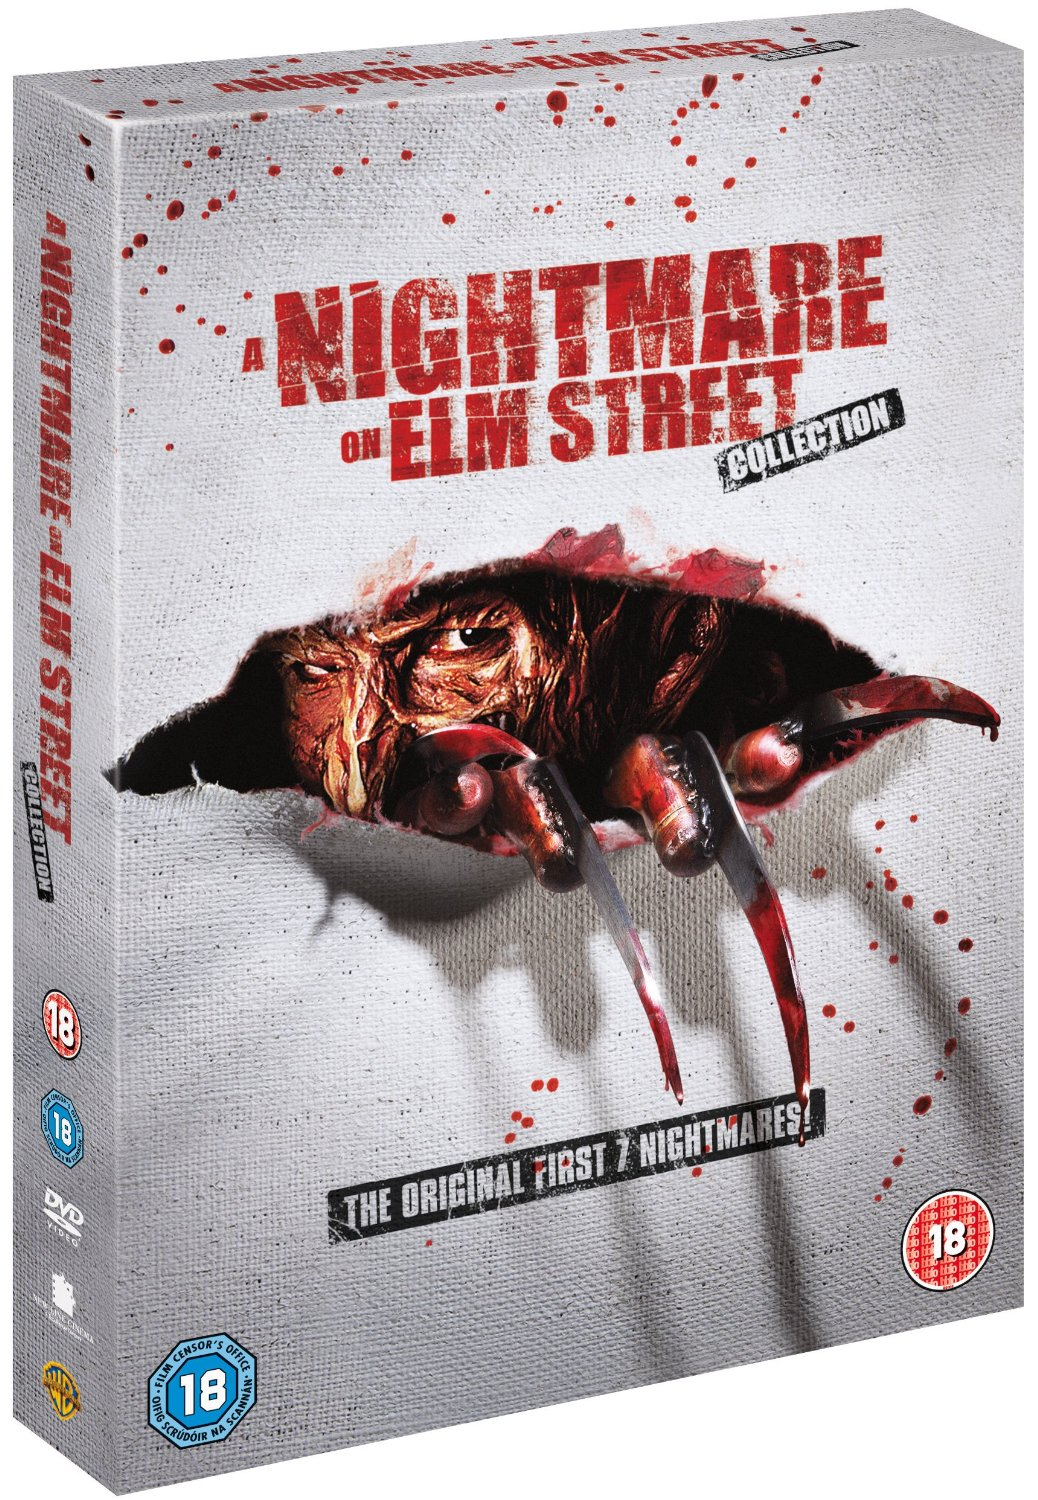 A Nightmare On Elm Street 5: The Dream Child packshot